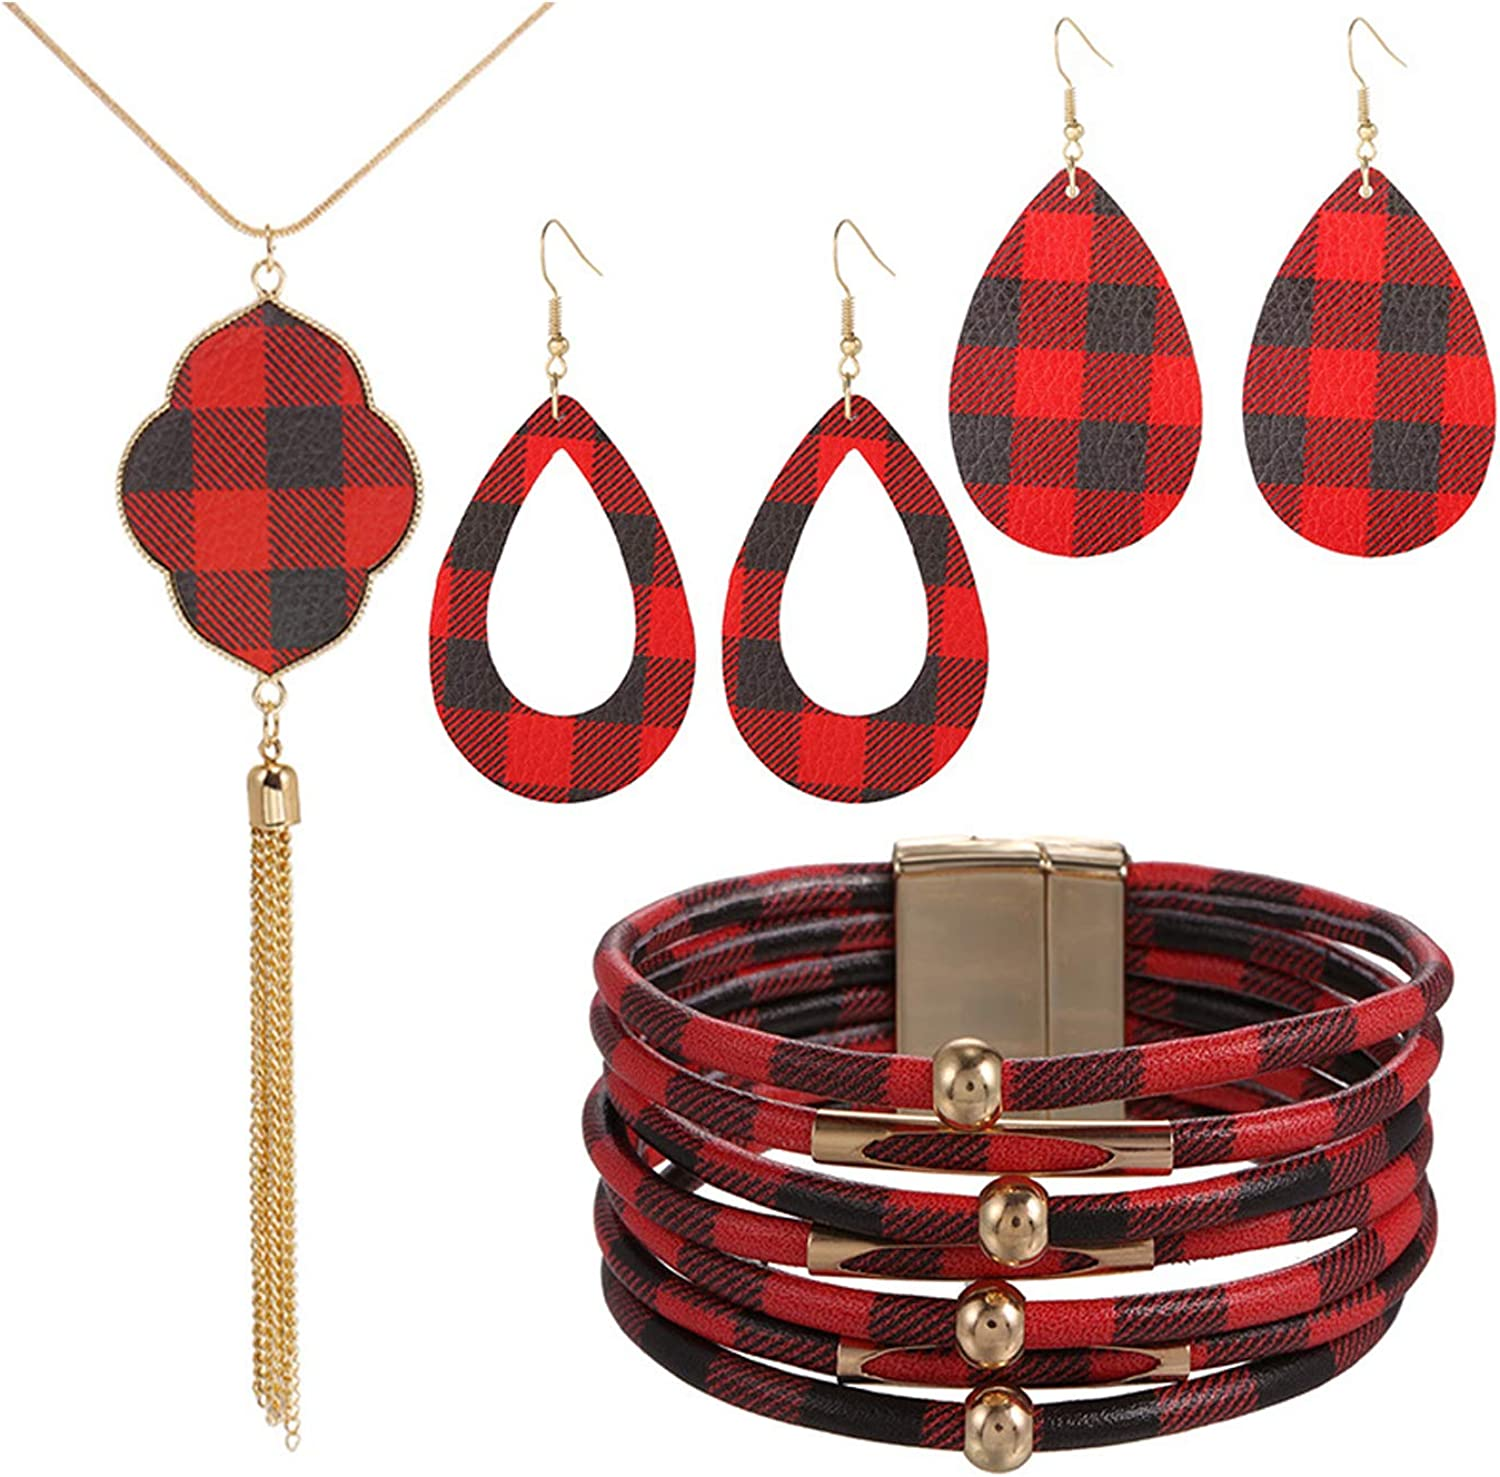 FUTIMELY 4 Pieces Christmas Plaid Jewelry Set Gifts for Women,Christmas Red Black Buffalo Plaid Print Earrings and Multi-Layer Bracelet Faux Leather Necklace Set